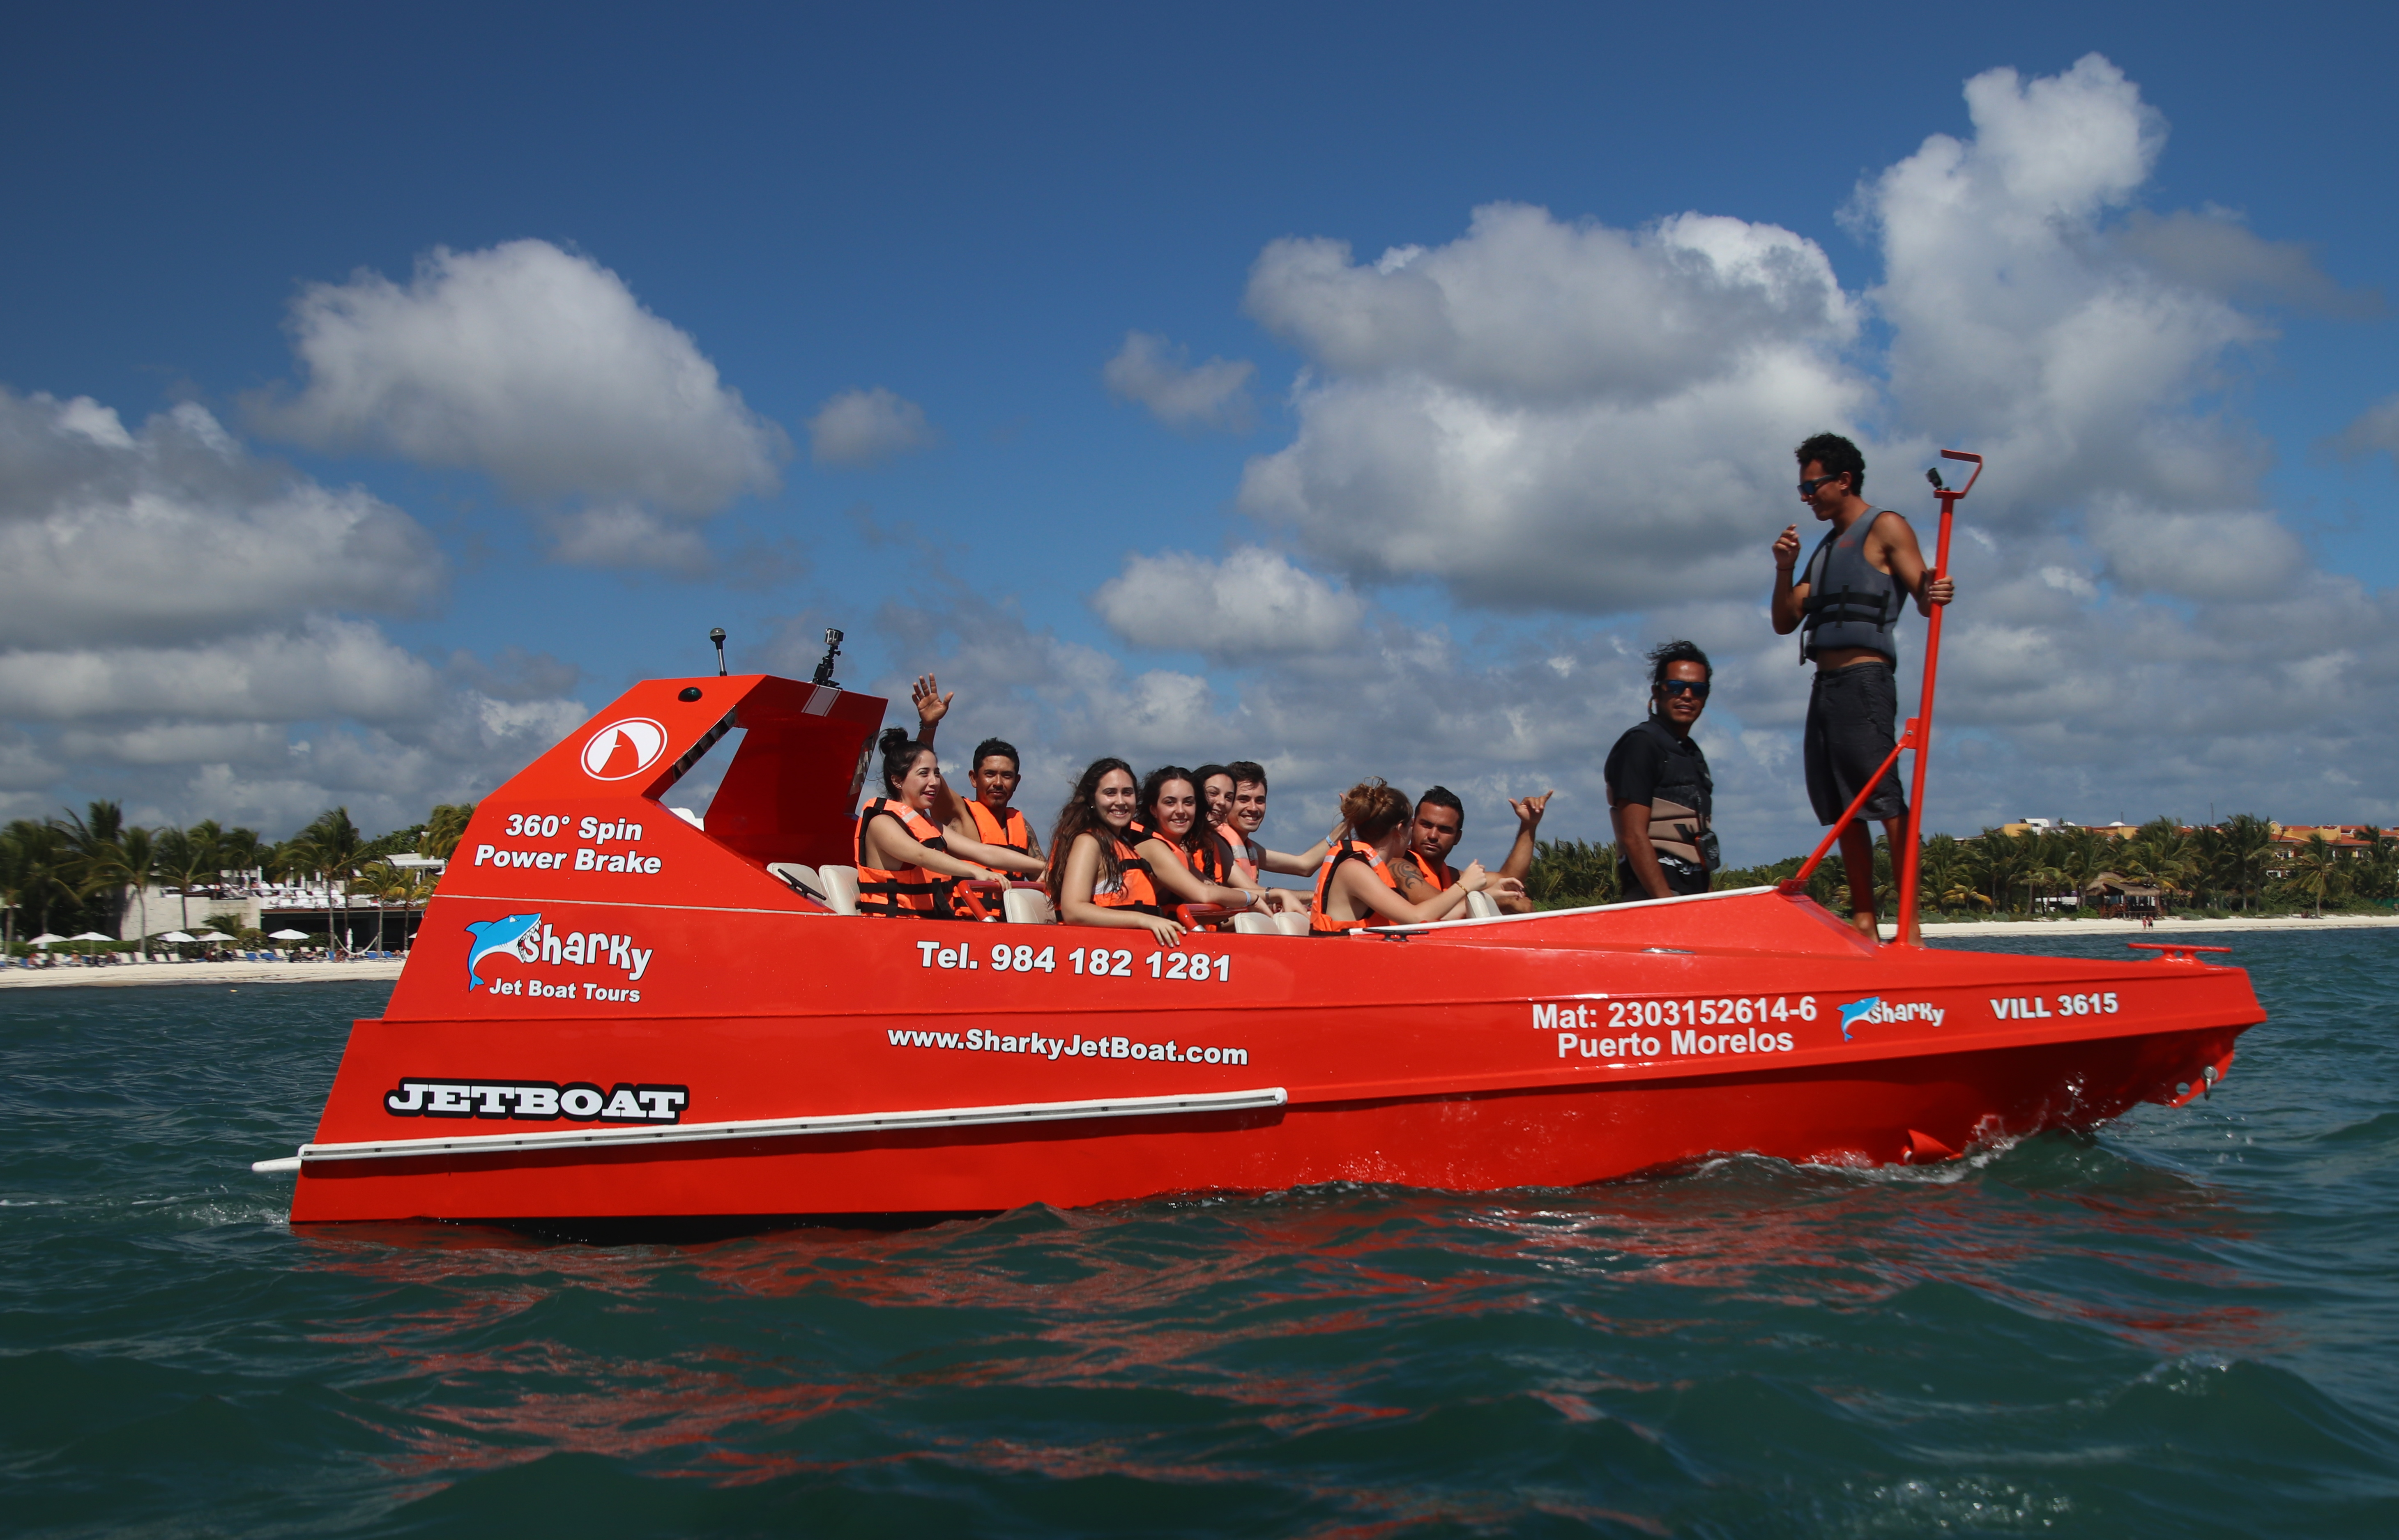 Our Boat - SharkyJetBoat com